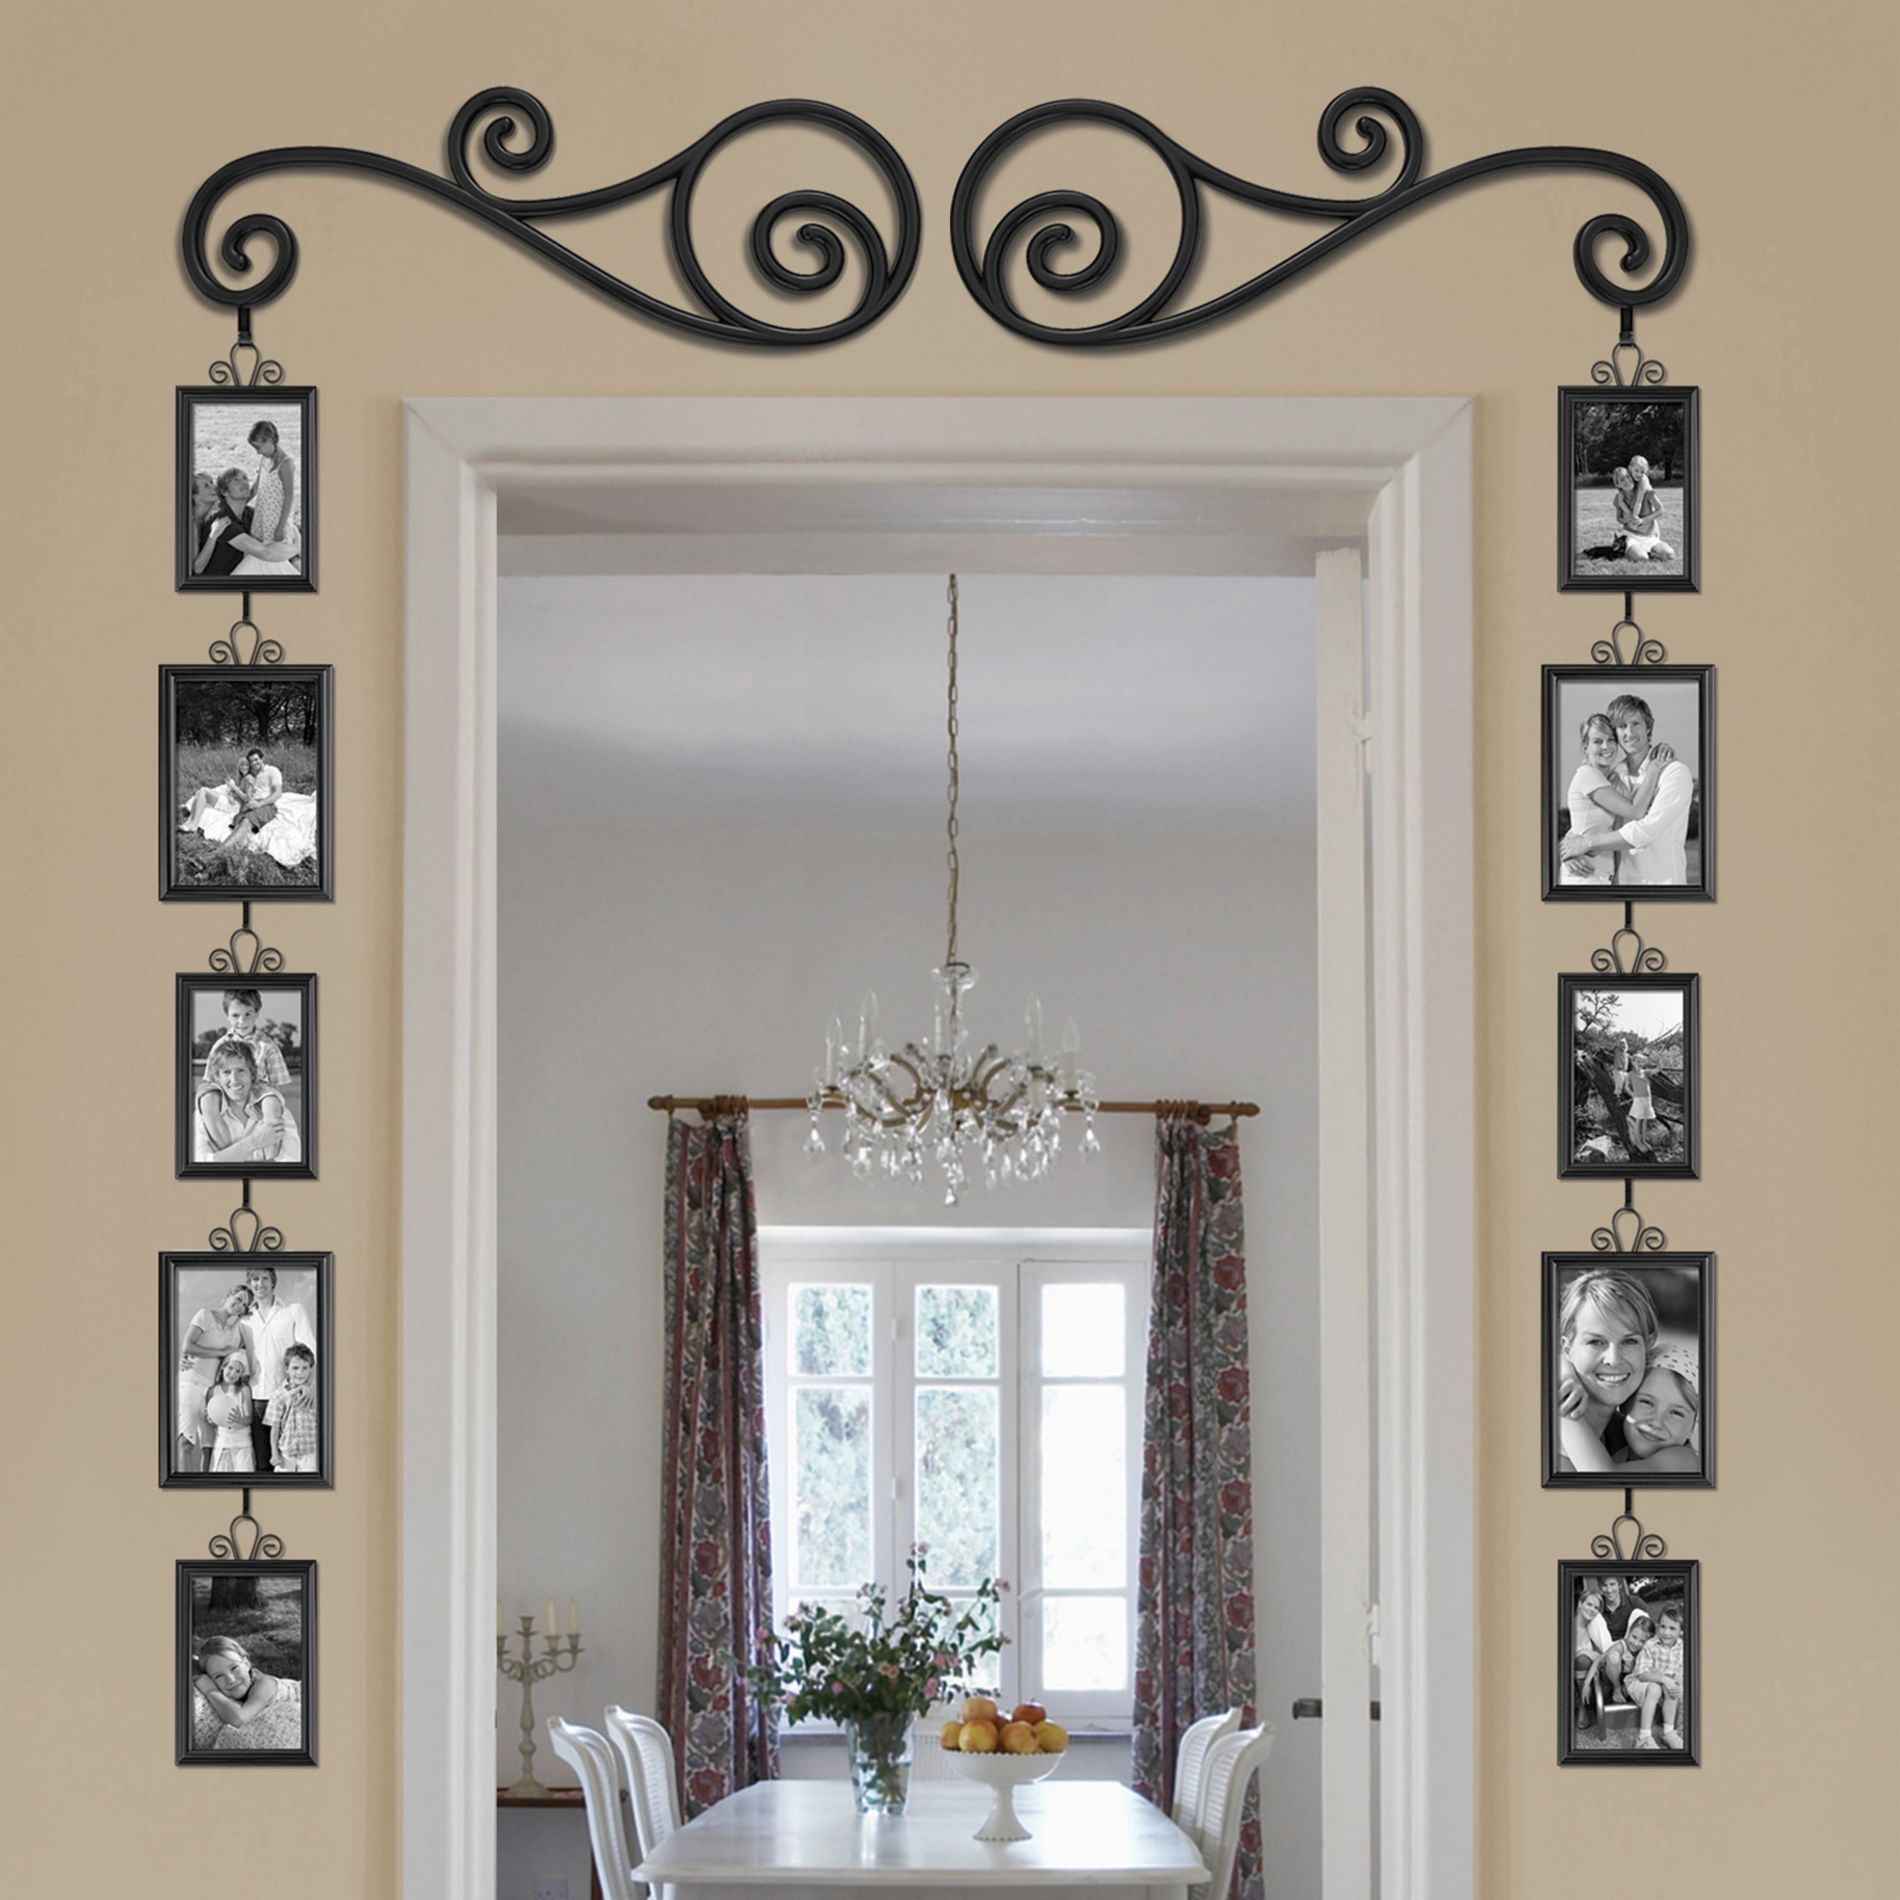 Bedroom wall decorating ideas picture frames - Frame And Scroll 12 Piece Set